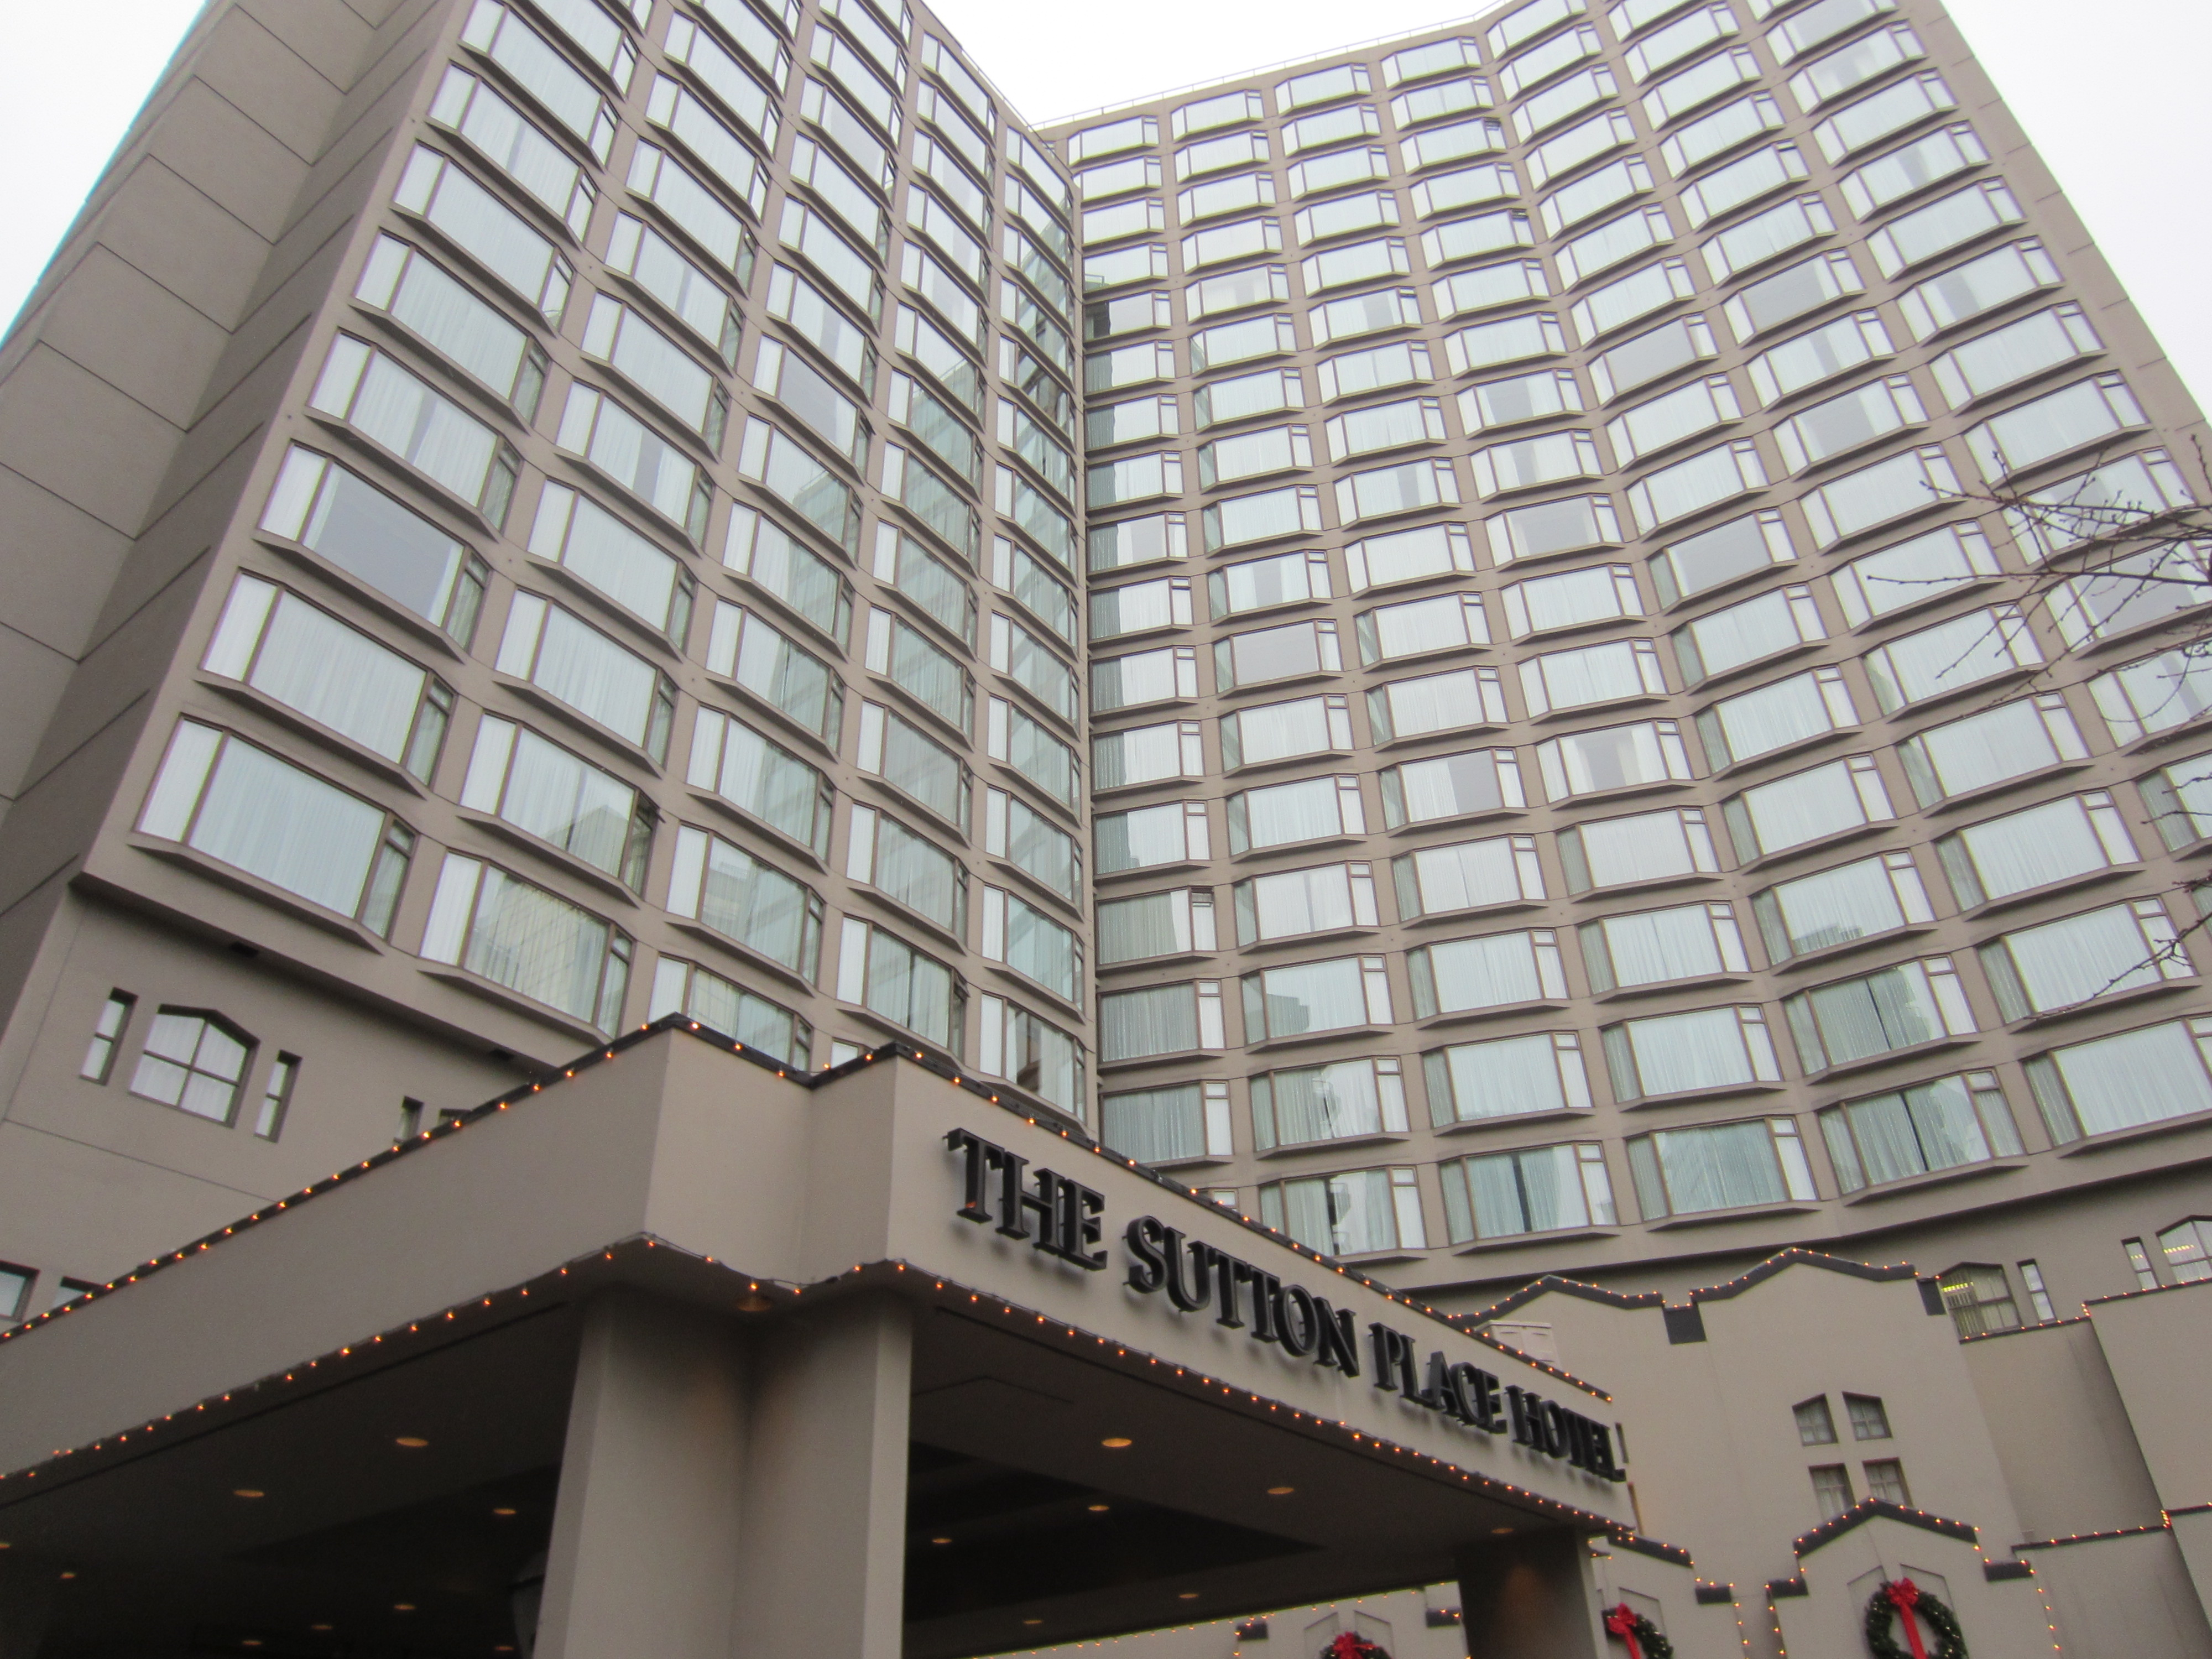 The Sutton Hotel Vancouver